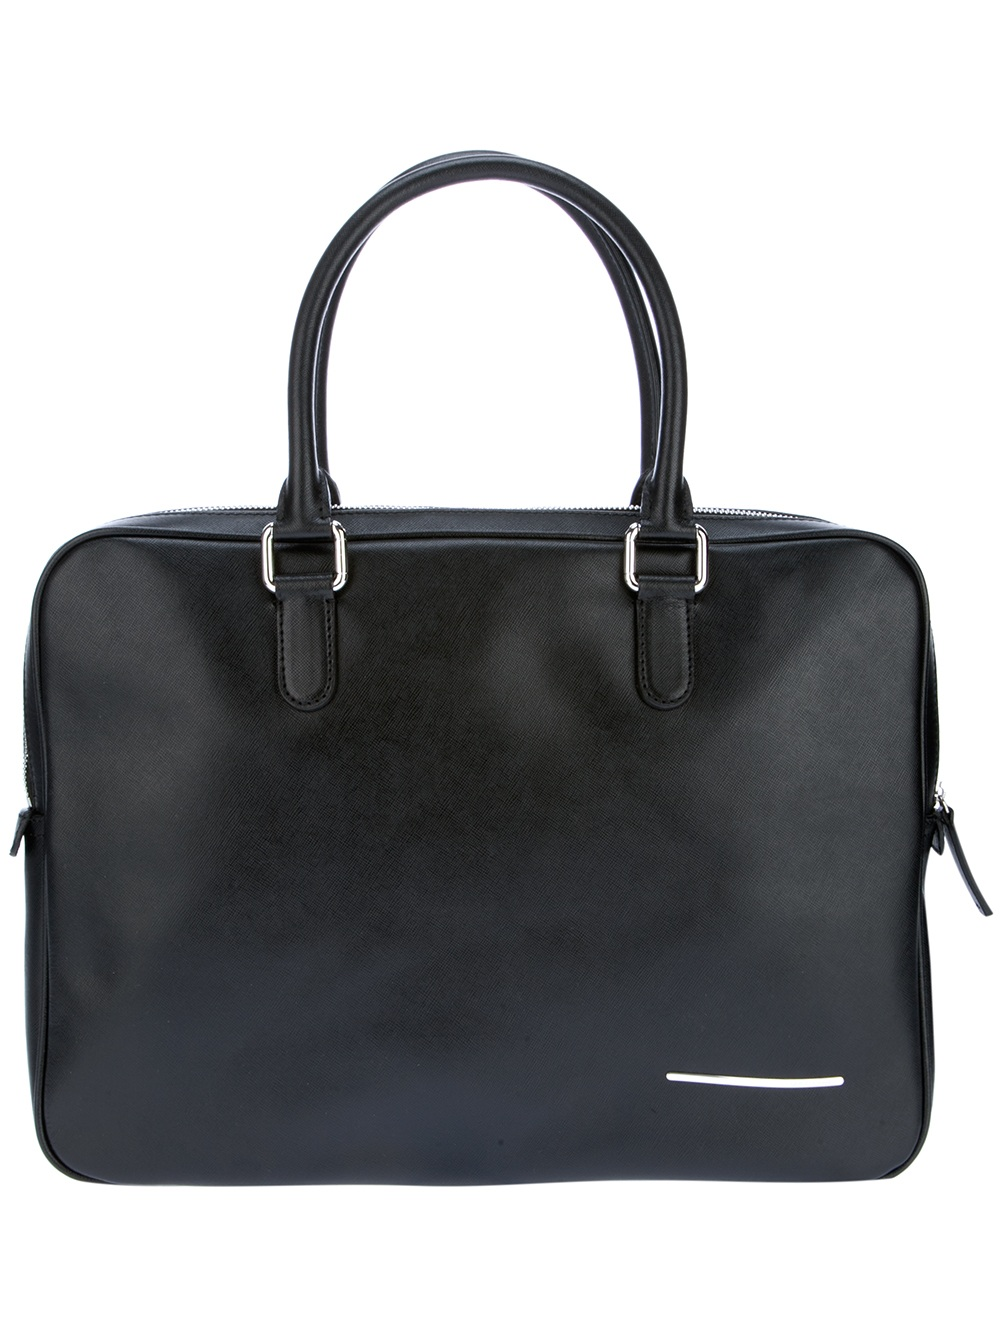 giorgio-armani-black-branded-laptop-bag-product-1-6539740-254380786.jpeg